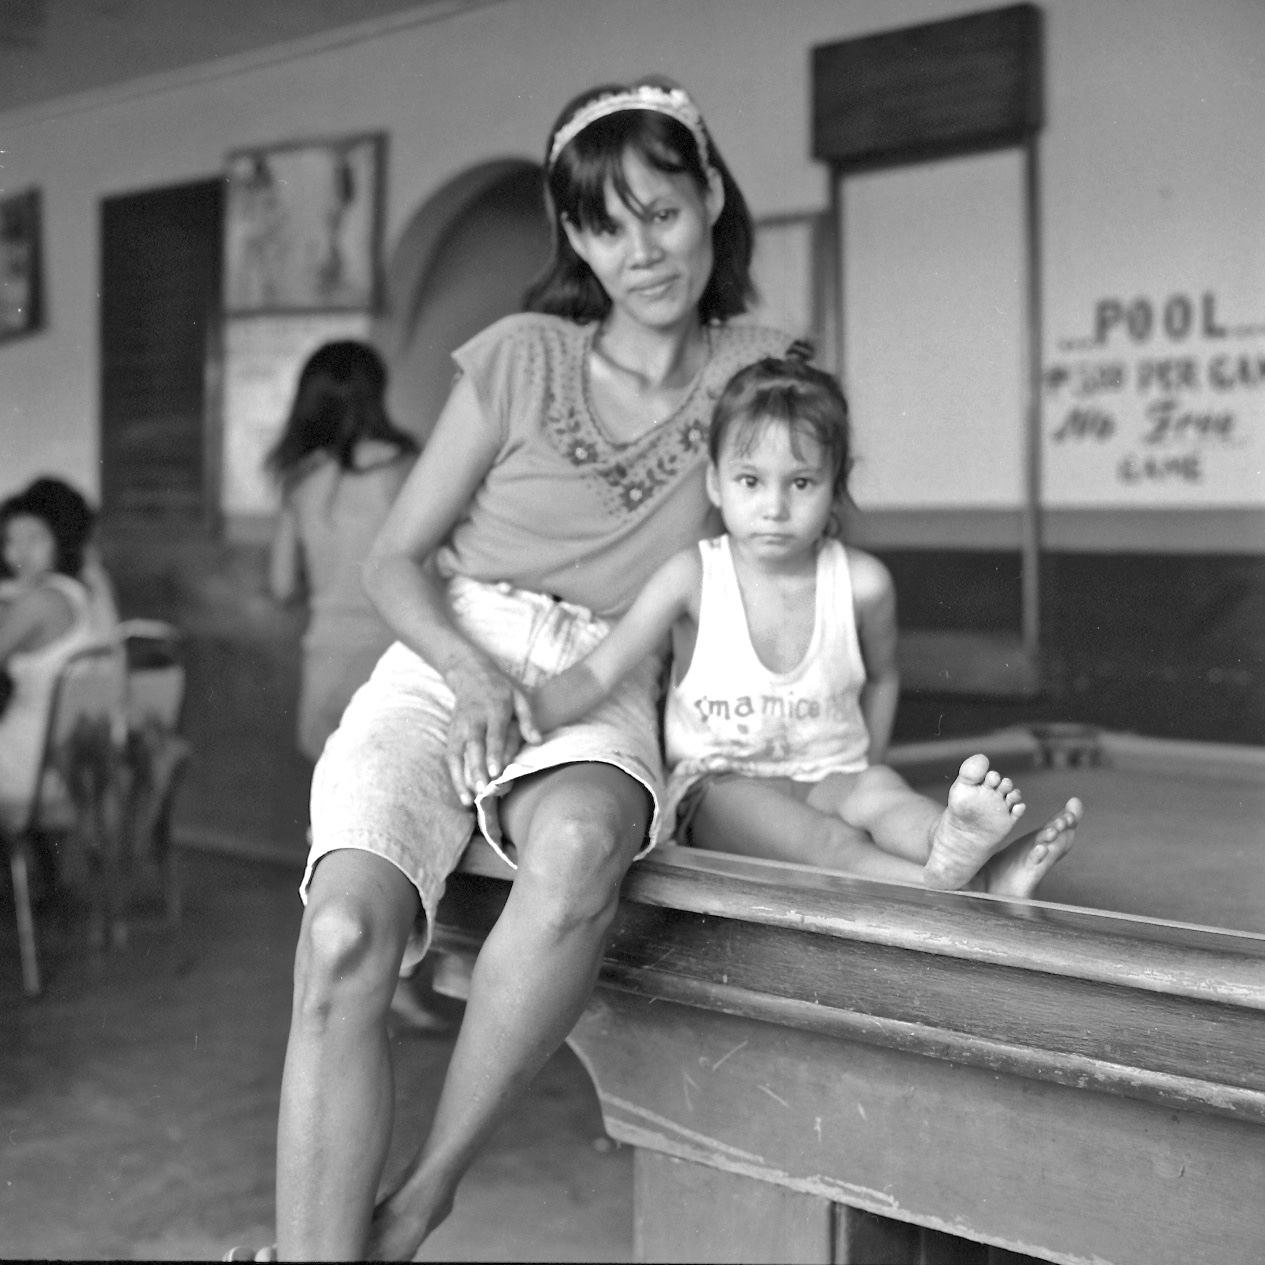 Woman and Child, Open Bar, Subic City, 1990